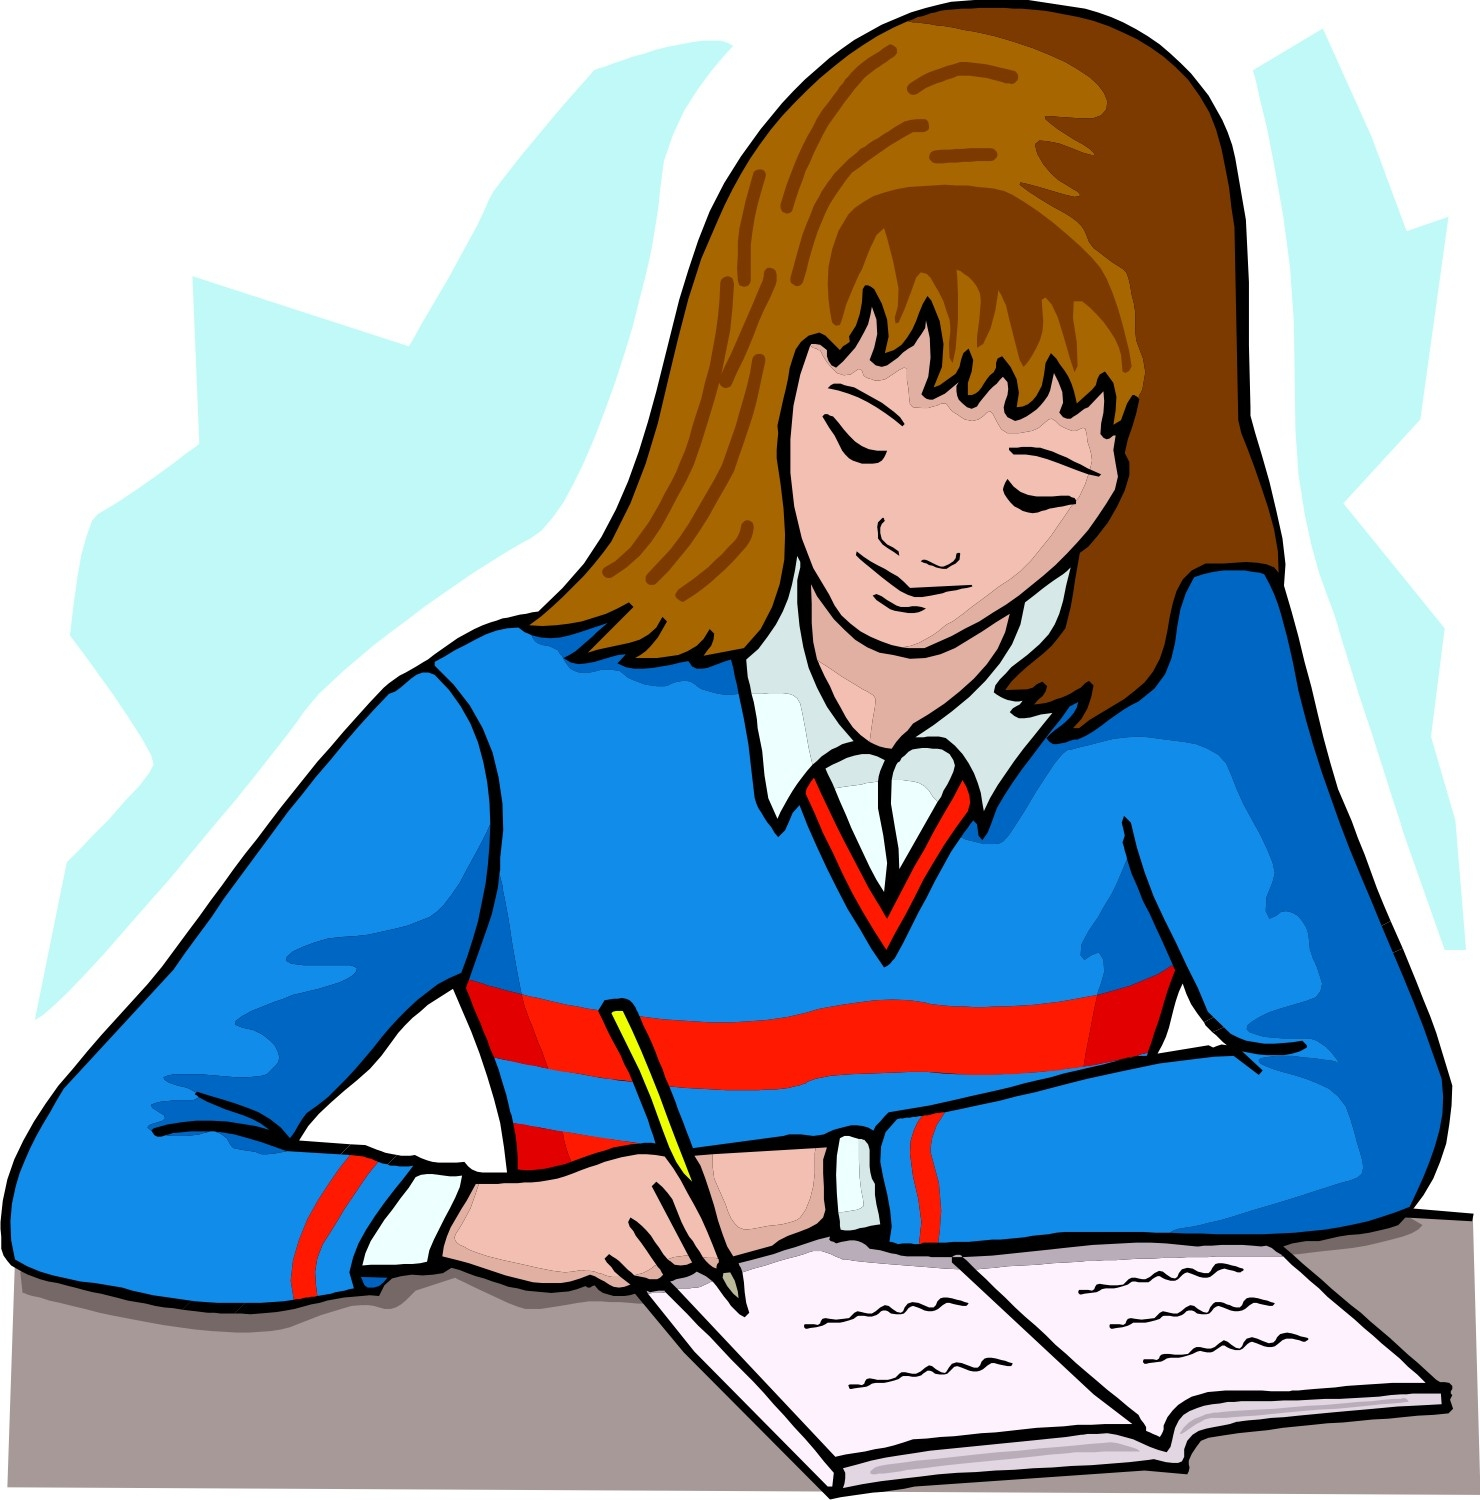 Homework clipart homework time Your Formation Signature up Six